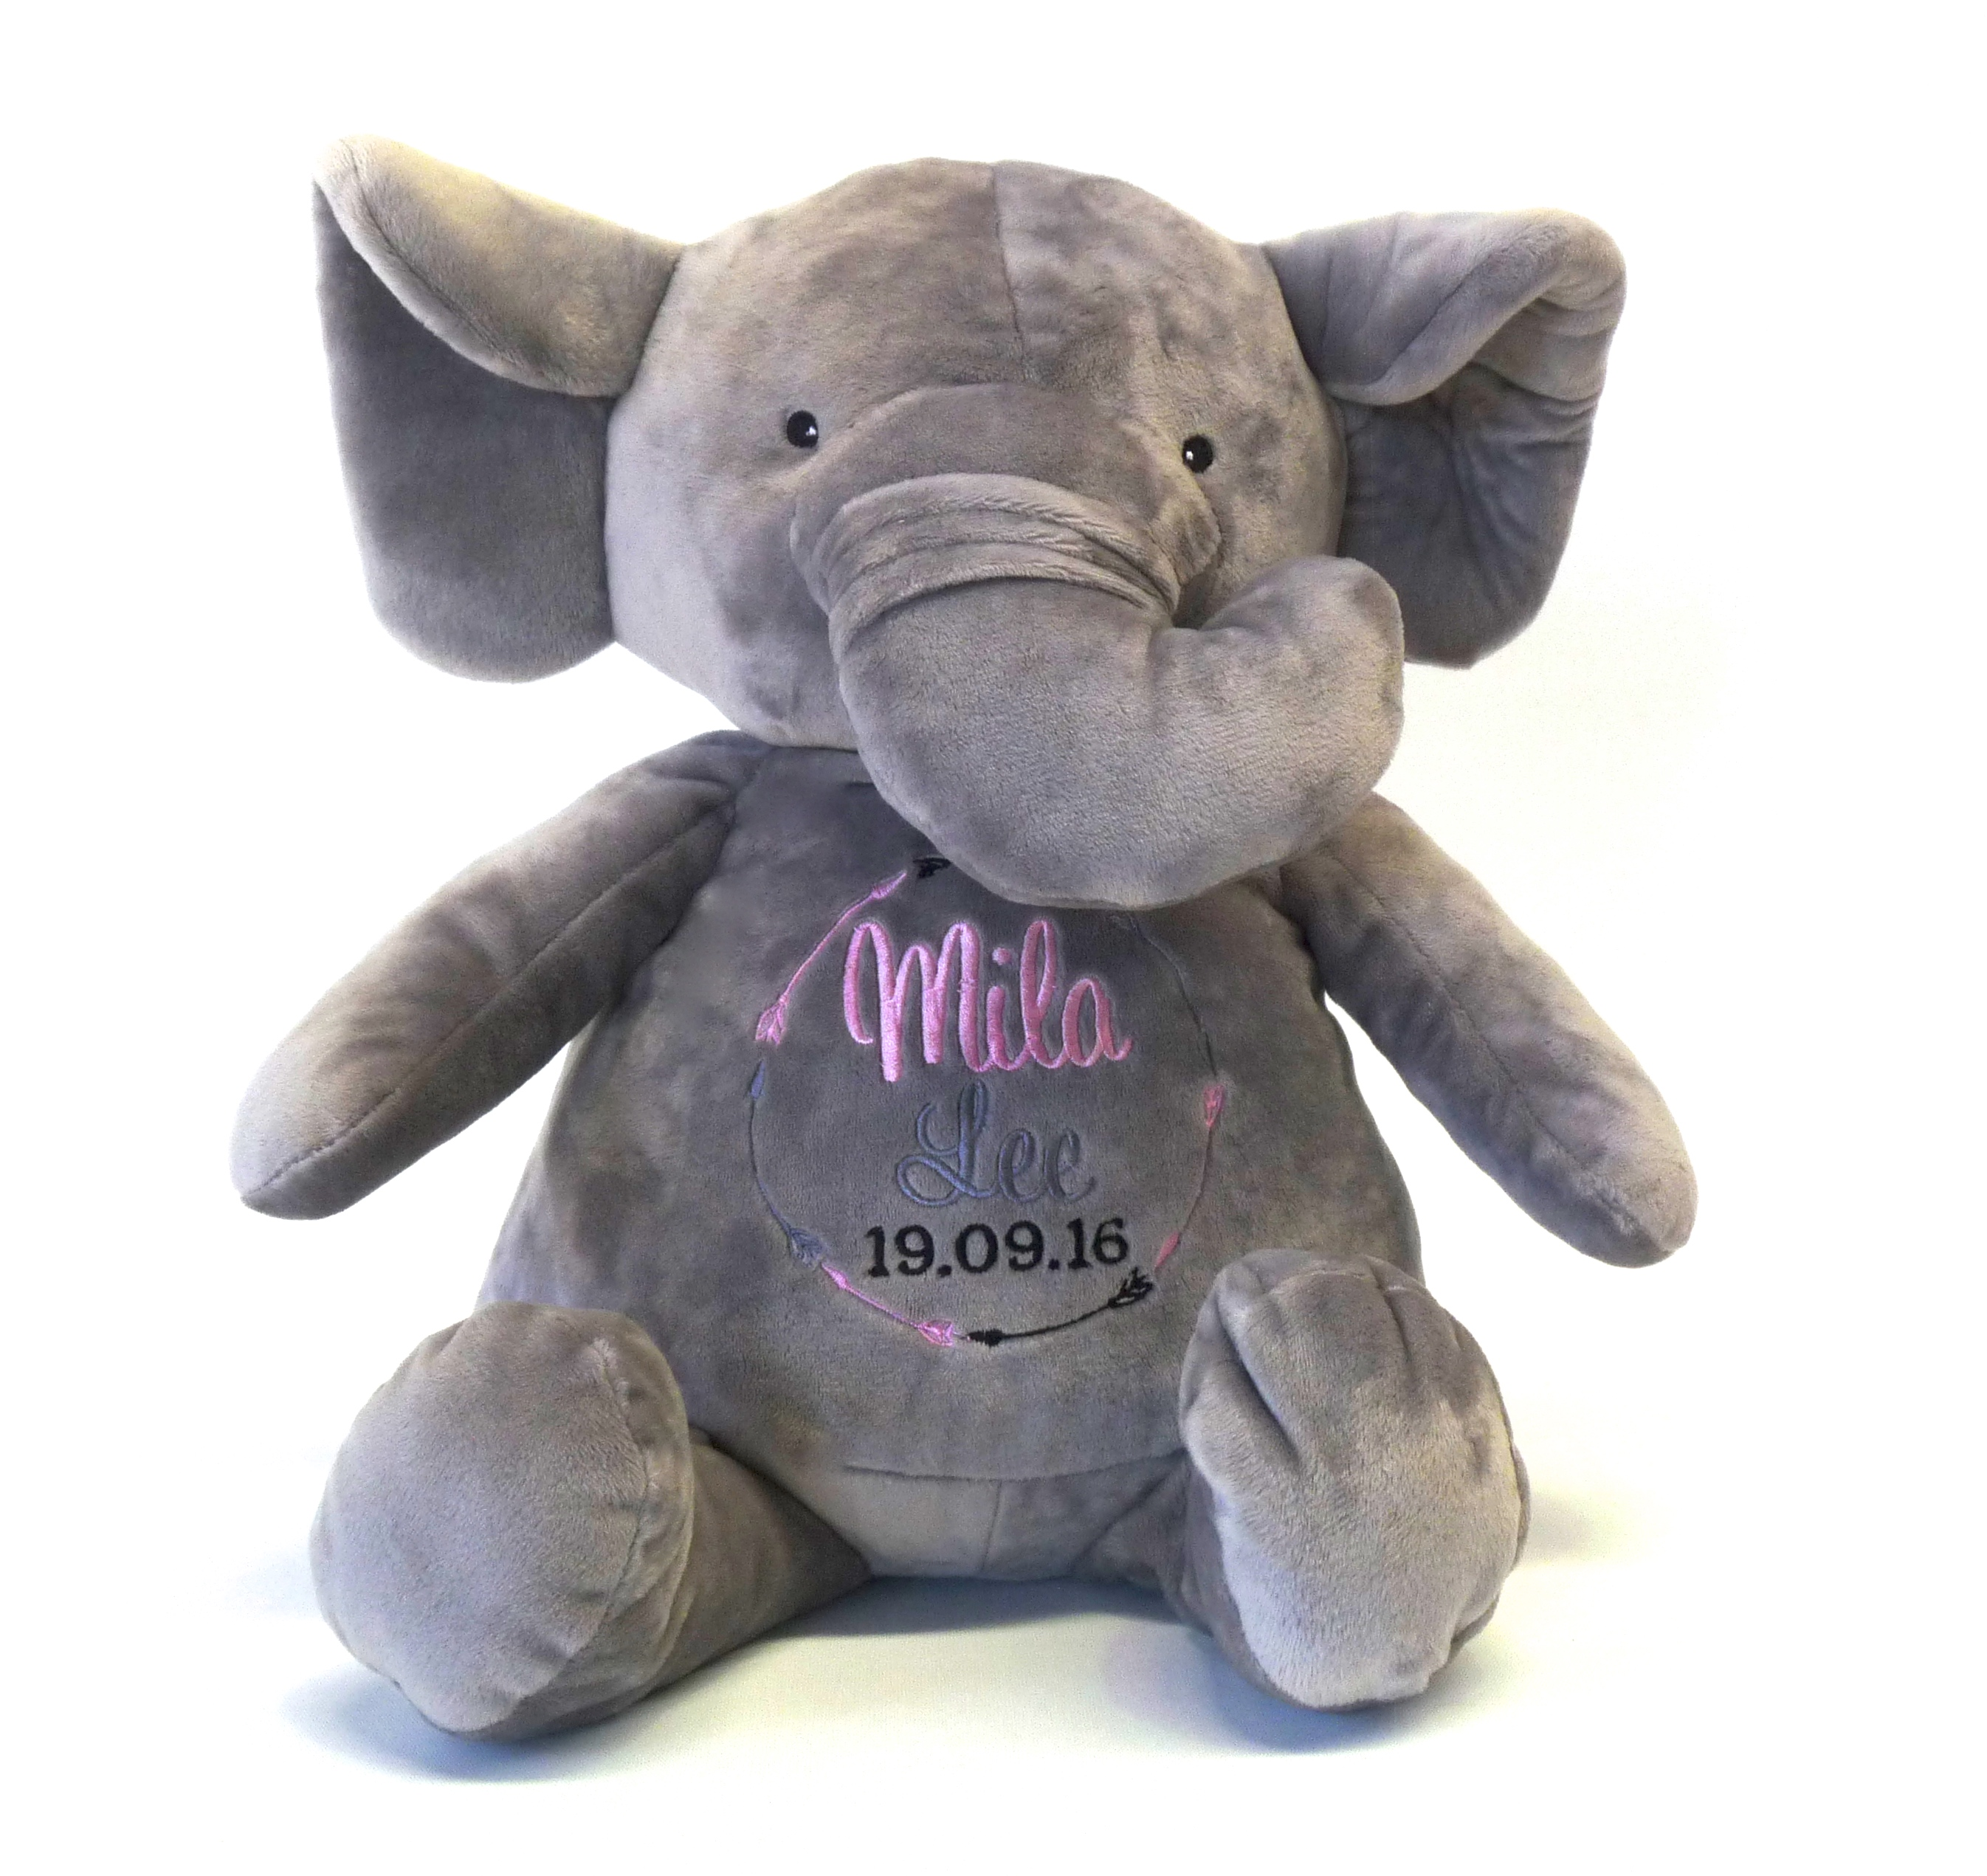 This+is+an+image+of+an+Elephant+Critter+Personalised+Teddy+from+My+Teddy